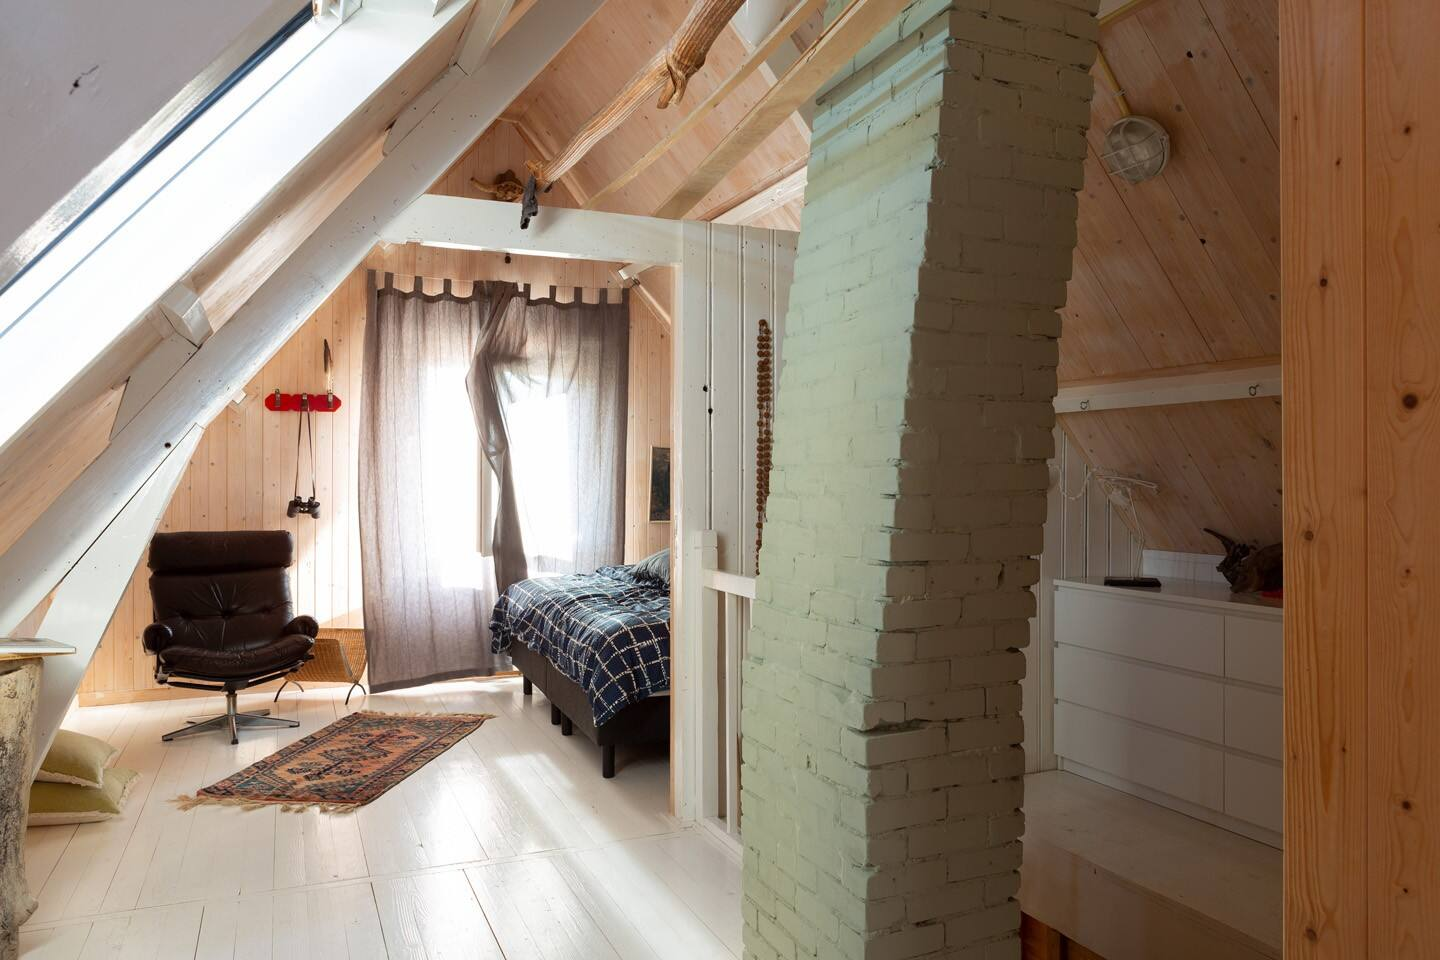 Welcome to our super cosy attic room! Lovingly refurbished into a small apartment with a bed, seating area and open bathroom.